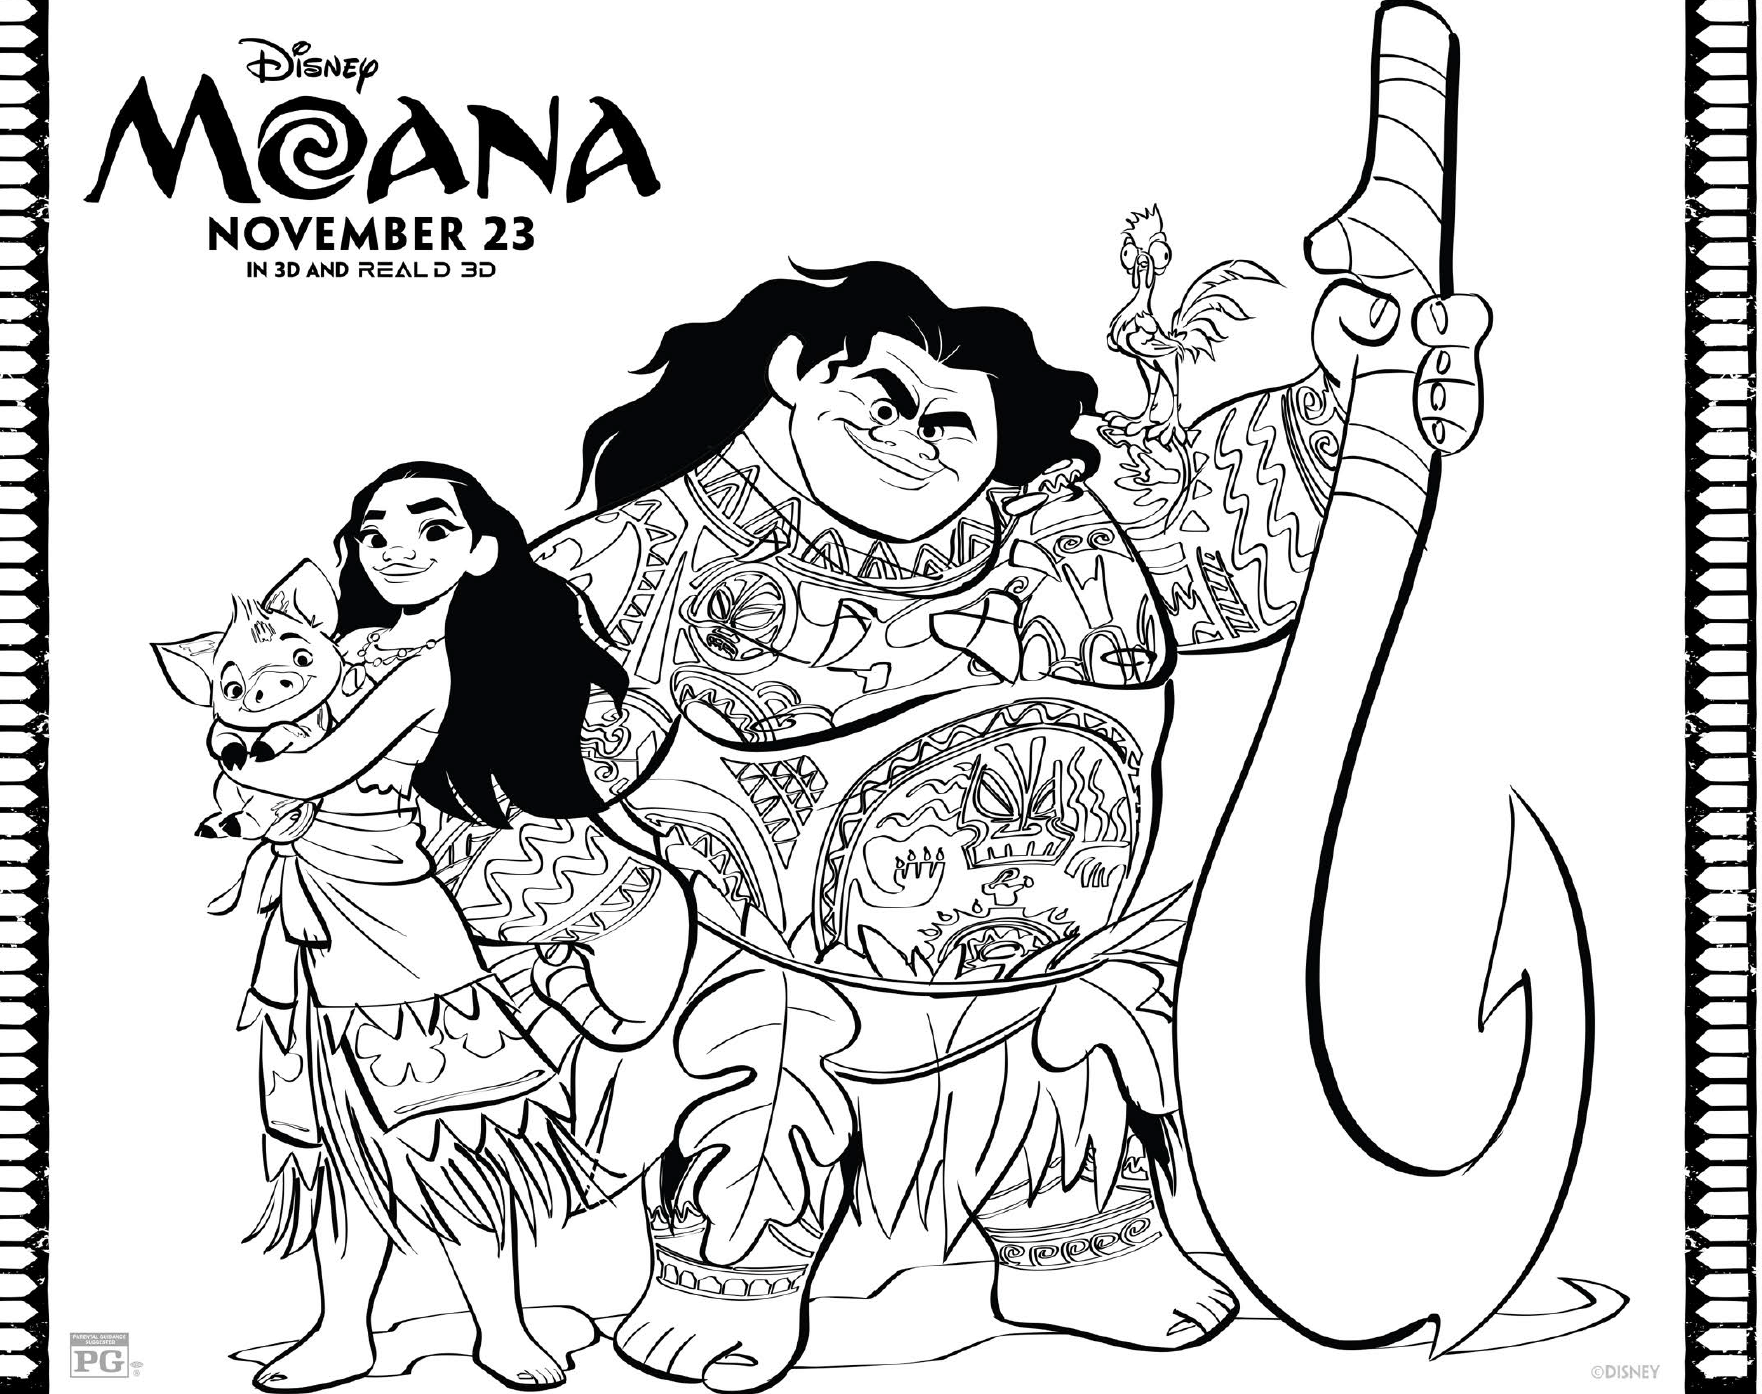 Coloring Pages Disney Jessie On Images Free Download At Channel: Free Moana Coloring Pages: Free Disney Printables And